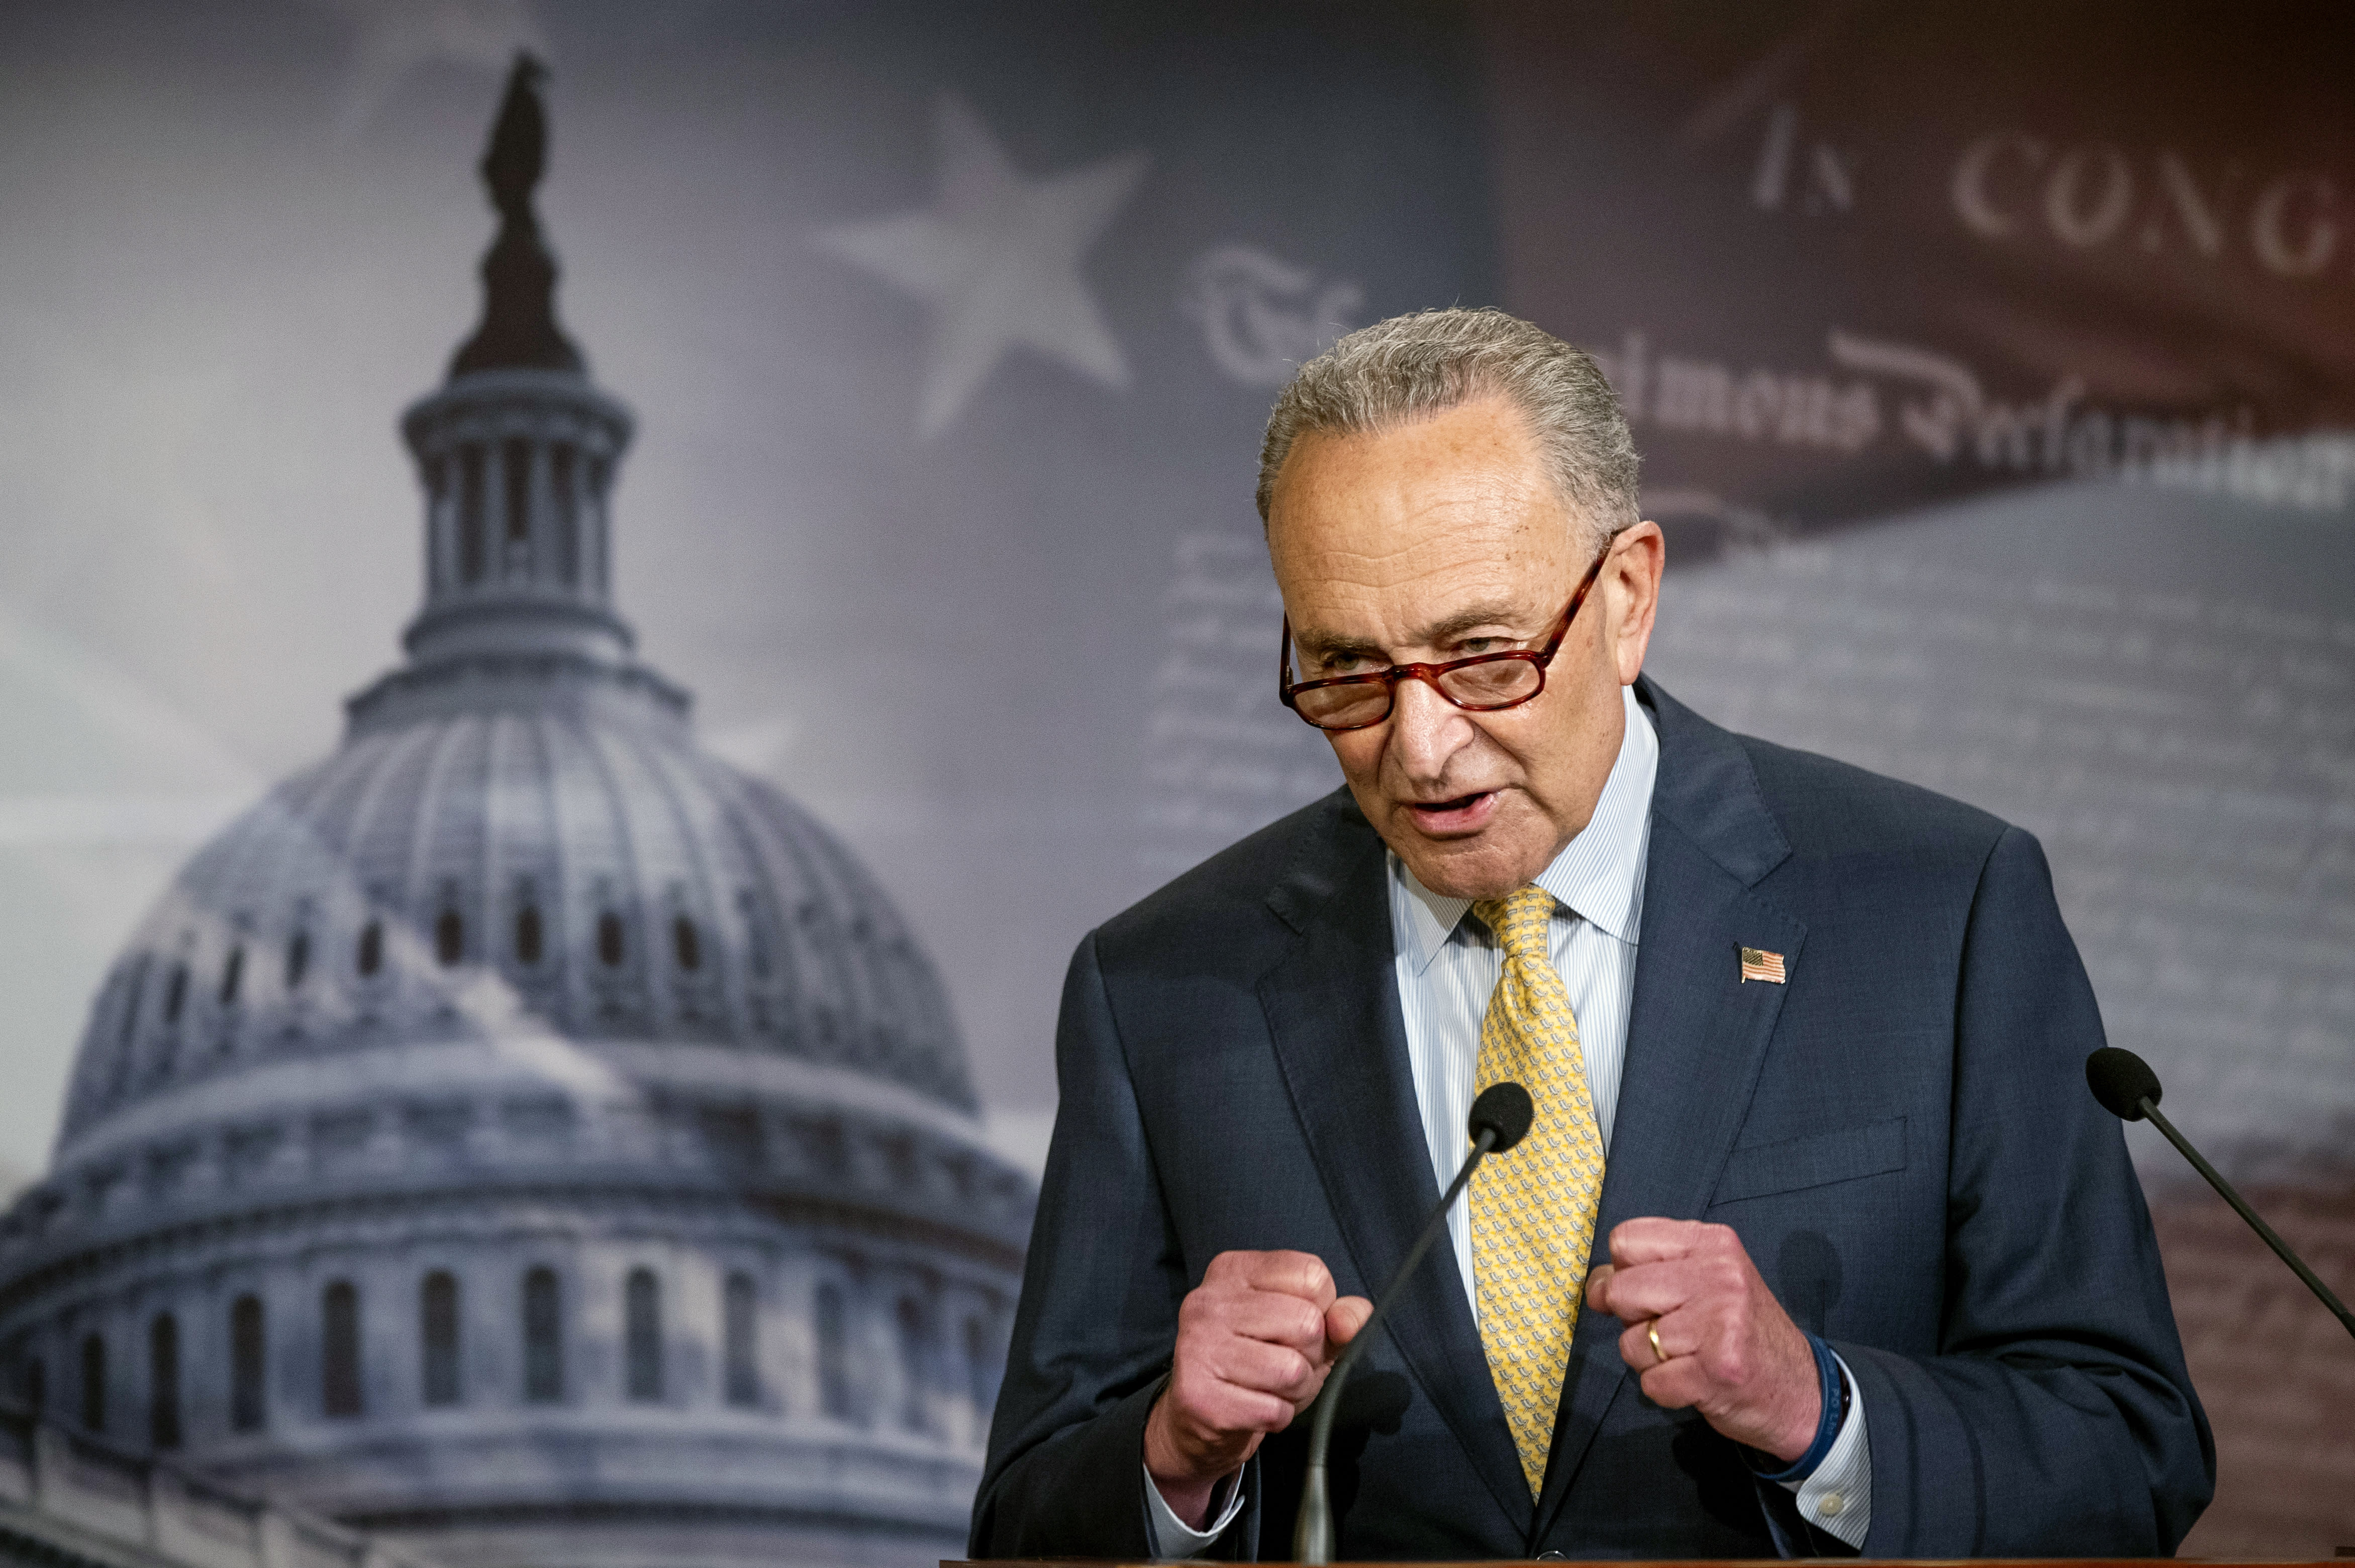 In this June 16, 2020 photo, Senate Majority Leader Chuck Schumer of N.Y., speaks during a news conference on Capitol Hill in Washington. (AP Photo/Manuel Balce Ceneta)